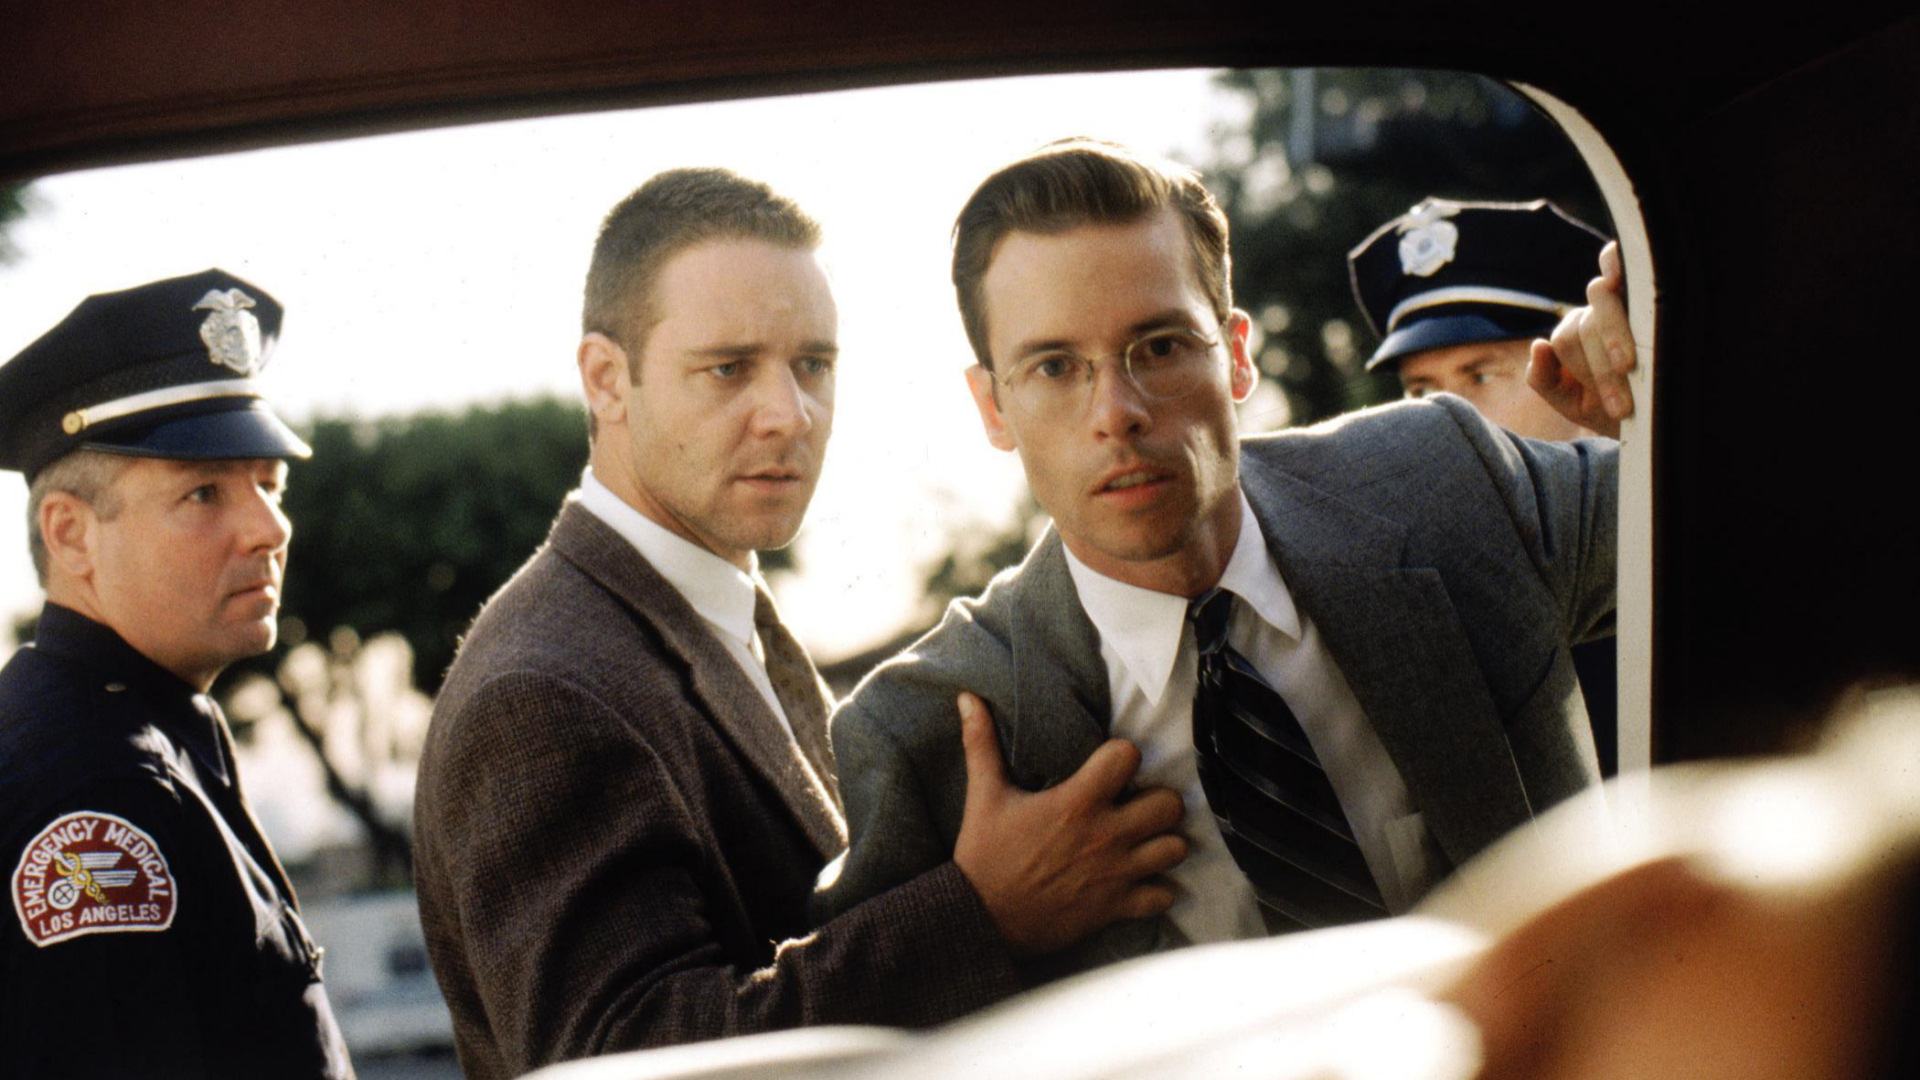 Russel Crowe (left) and Guy Pierce (centre) in LA Confidential